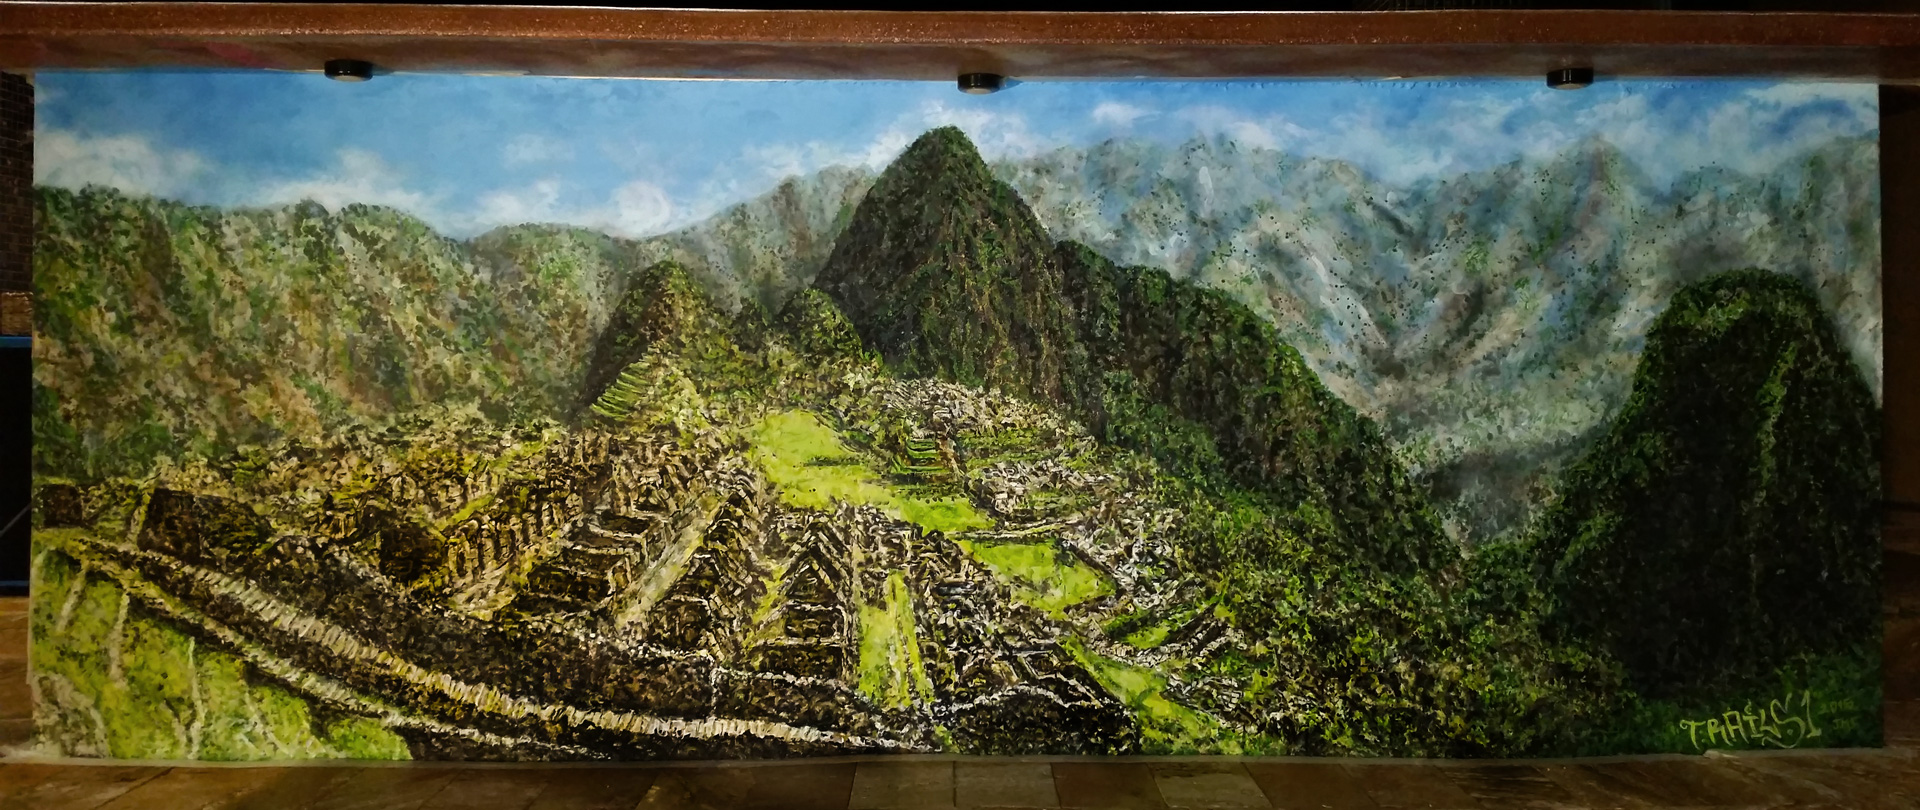 Street Art Machu Picchu Mural Trails1 39x84